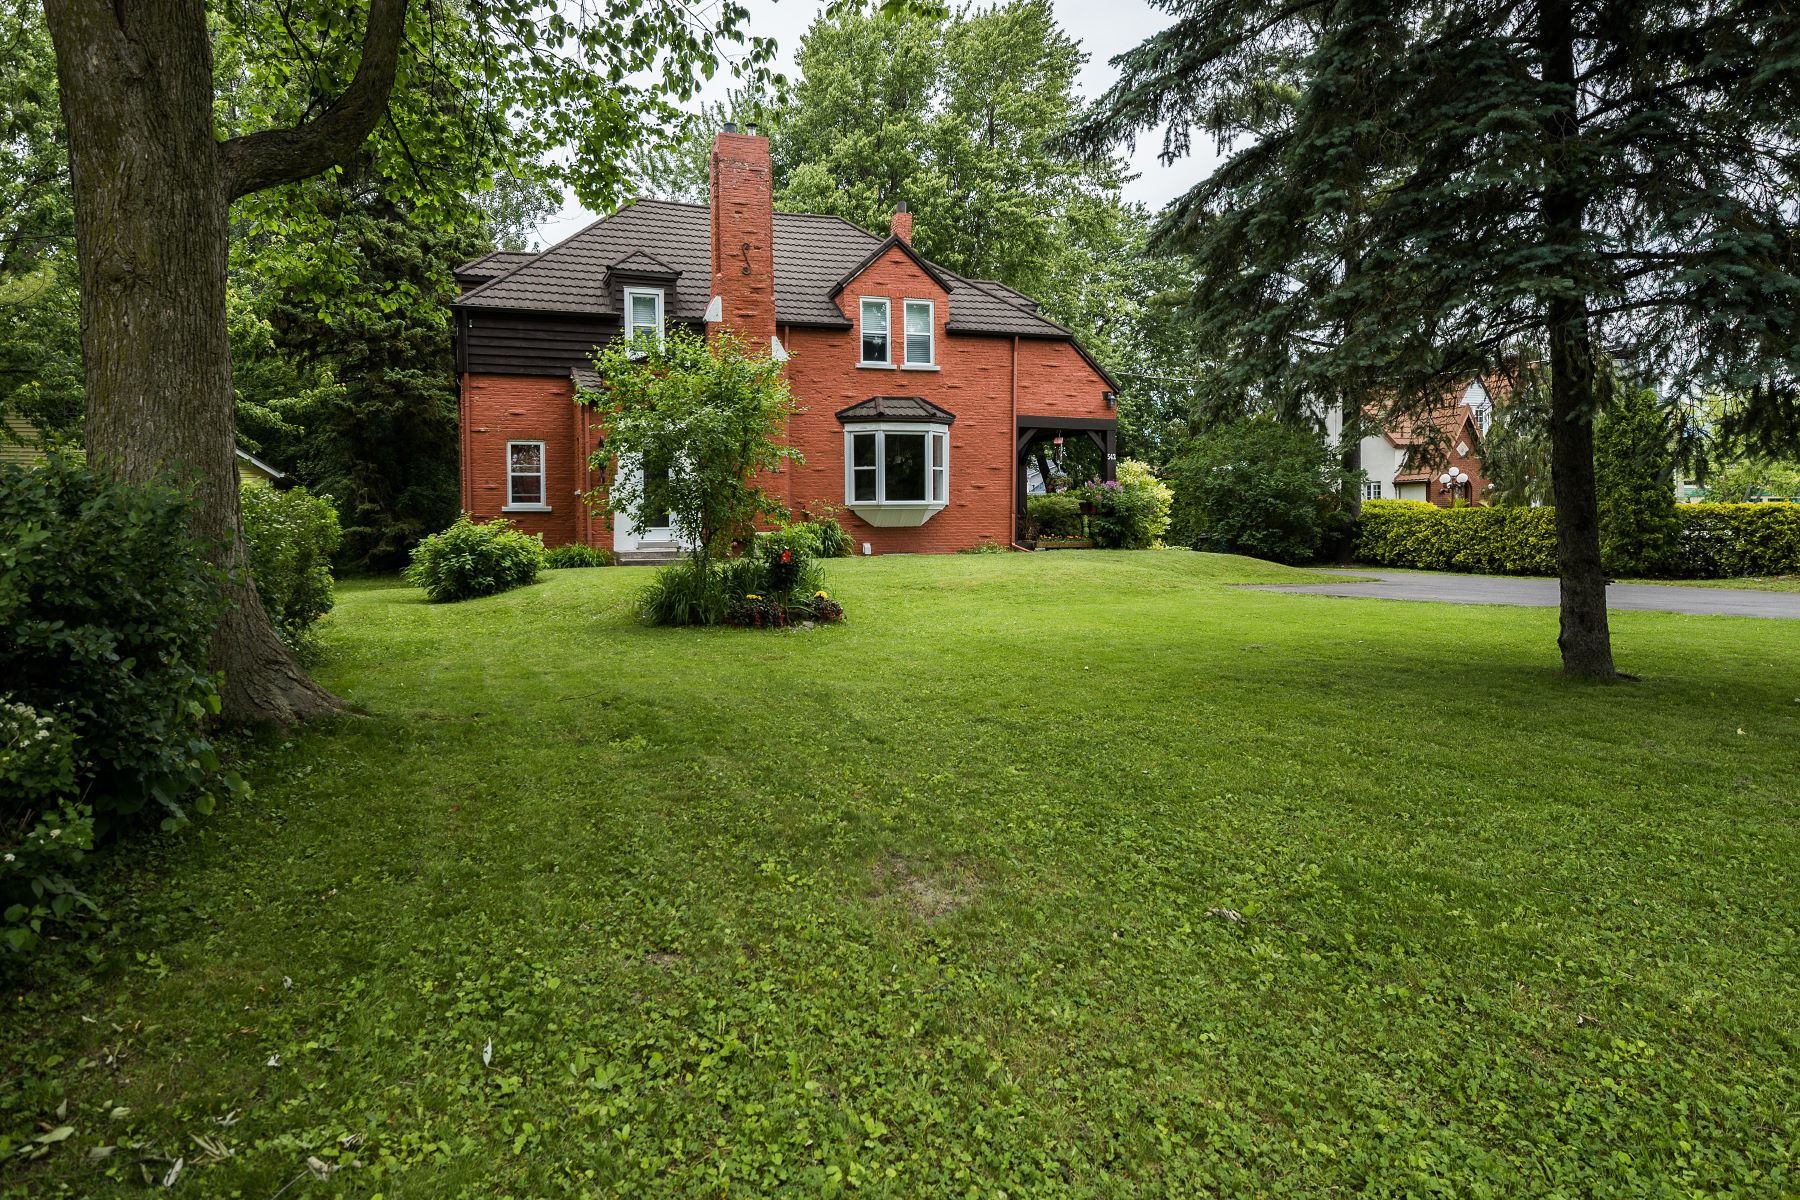 Casa Unifamiliar por un Venta en Lakefront with mountains views 542 Rue Richelieu Beloeil, Quebec, J3G4P4 Canadá